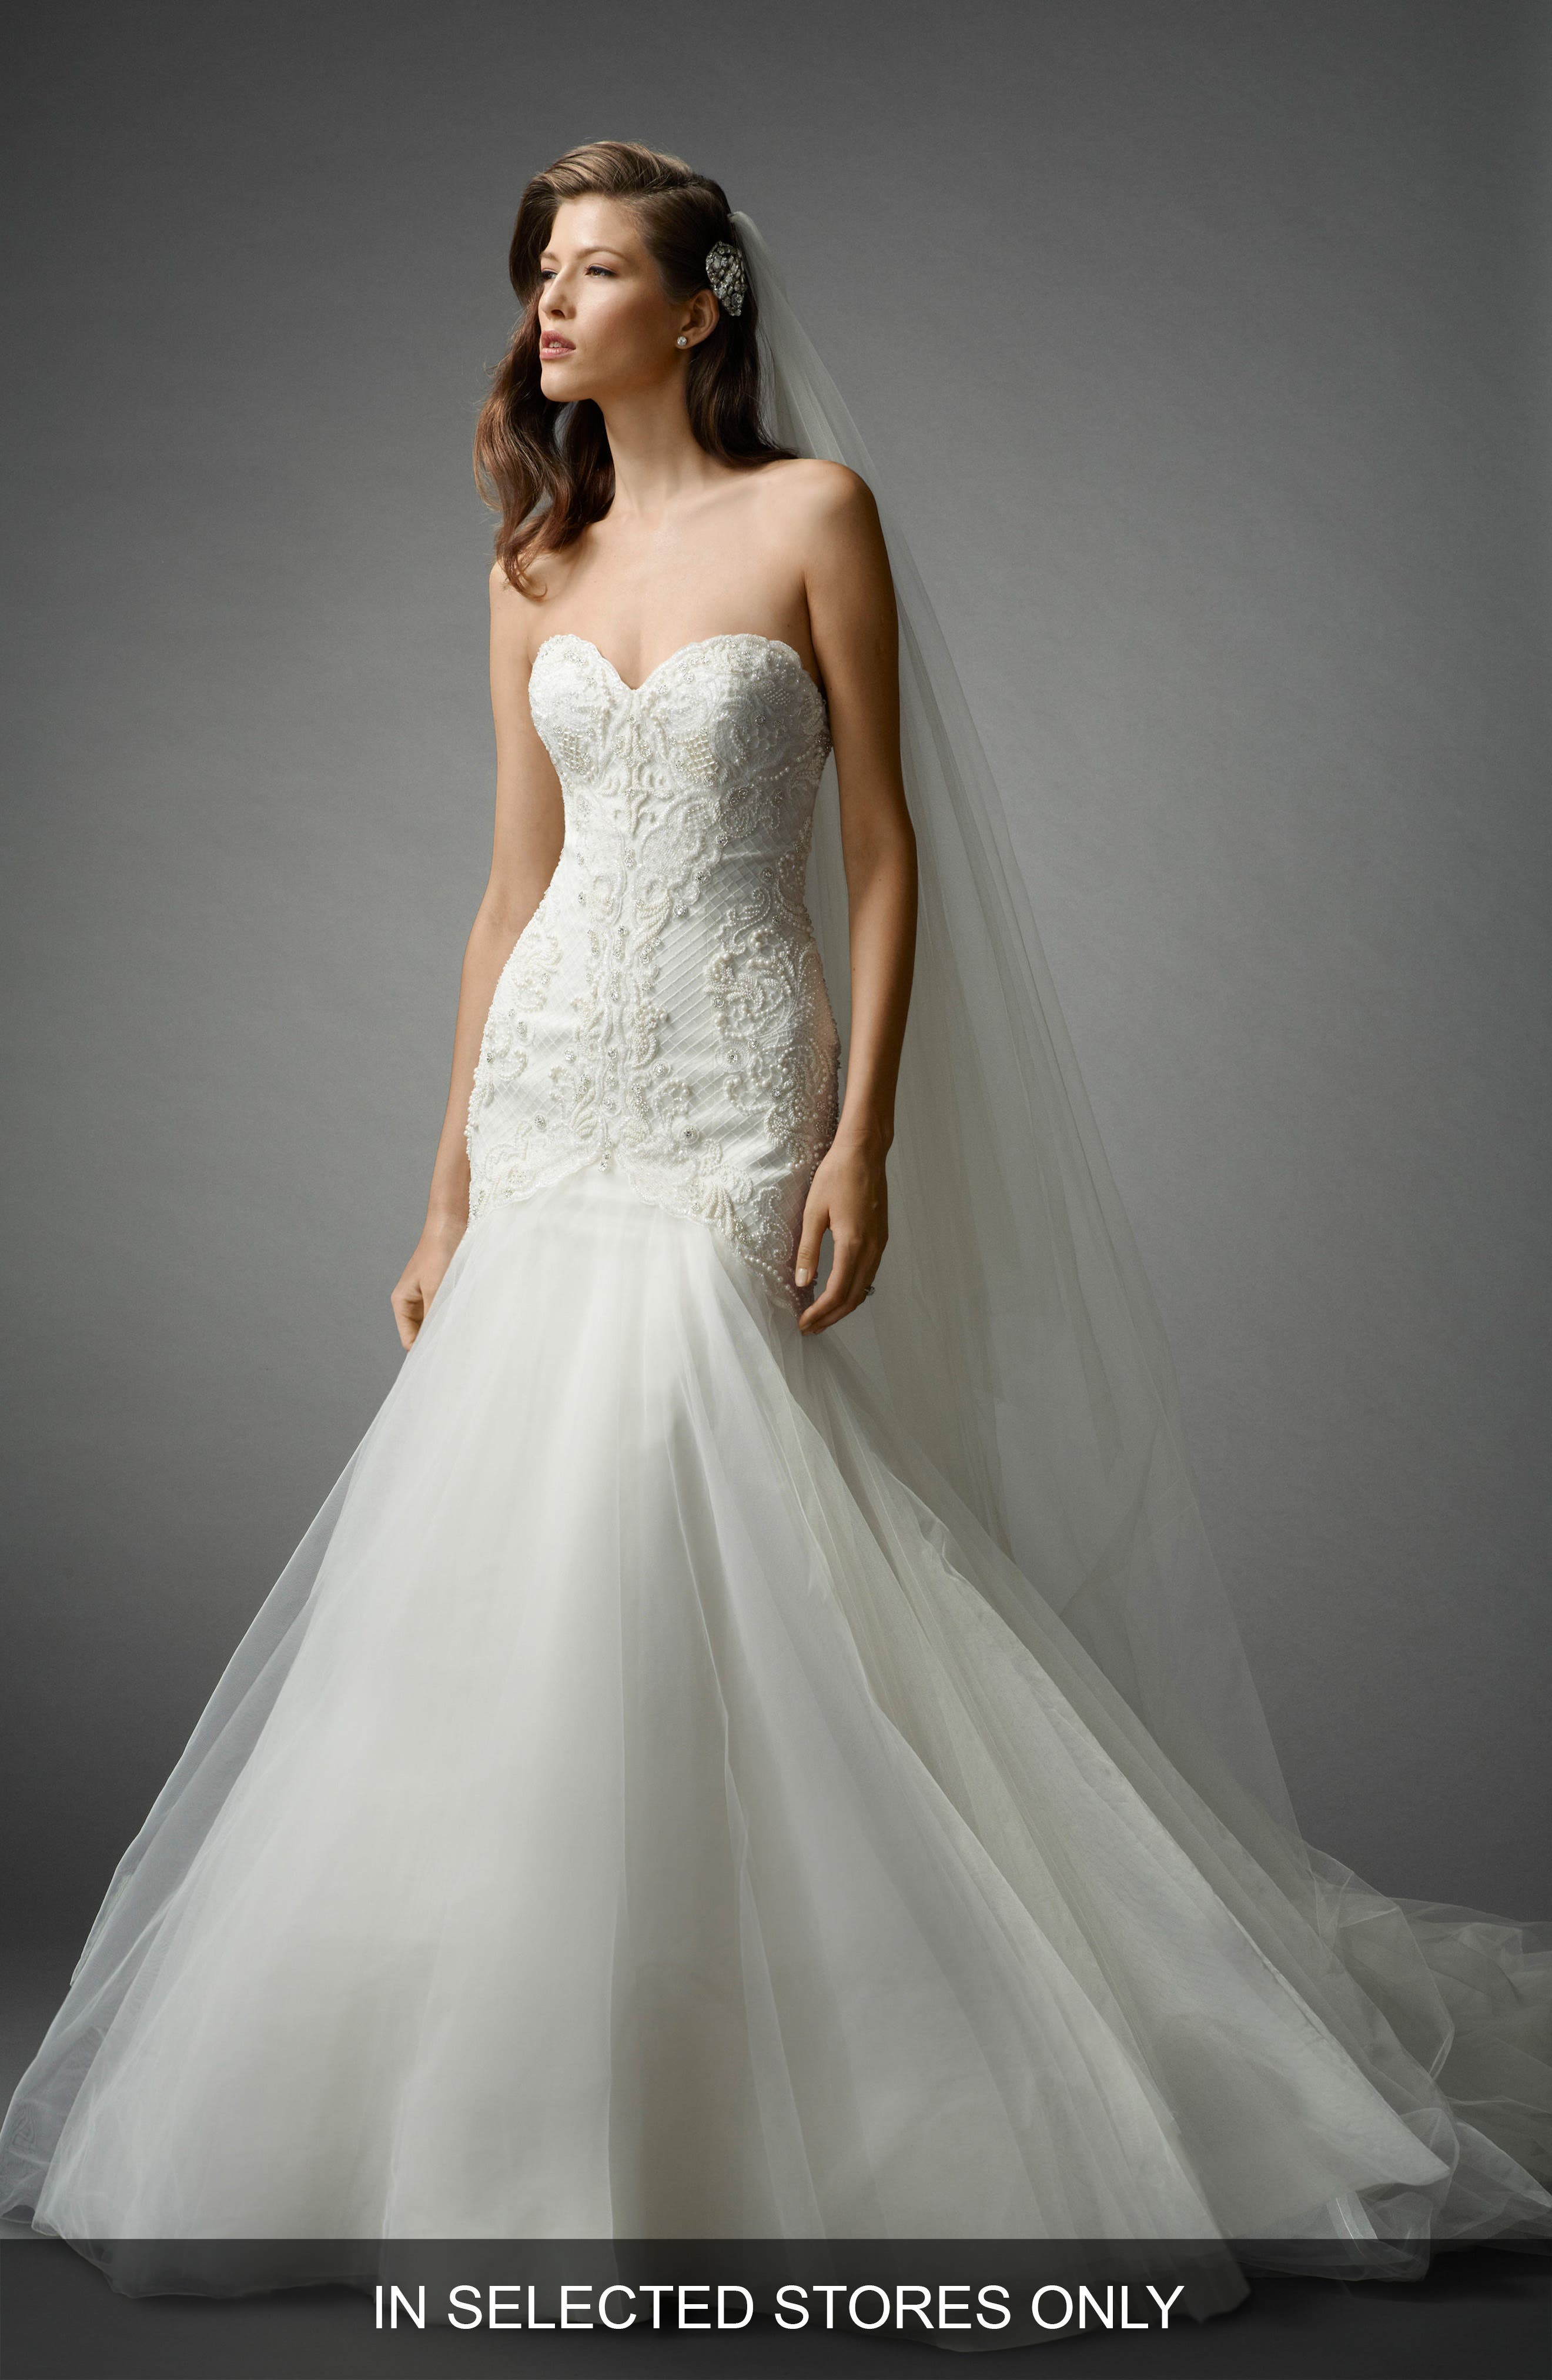 Shaina Beaded Lace & Tulle Mermaid Gown,                         Main,                         color, Ivory/Ivory